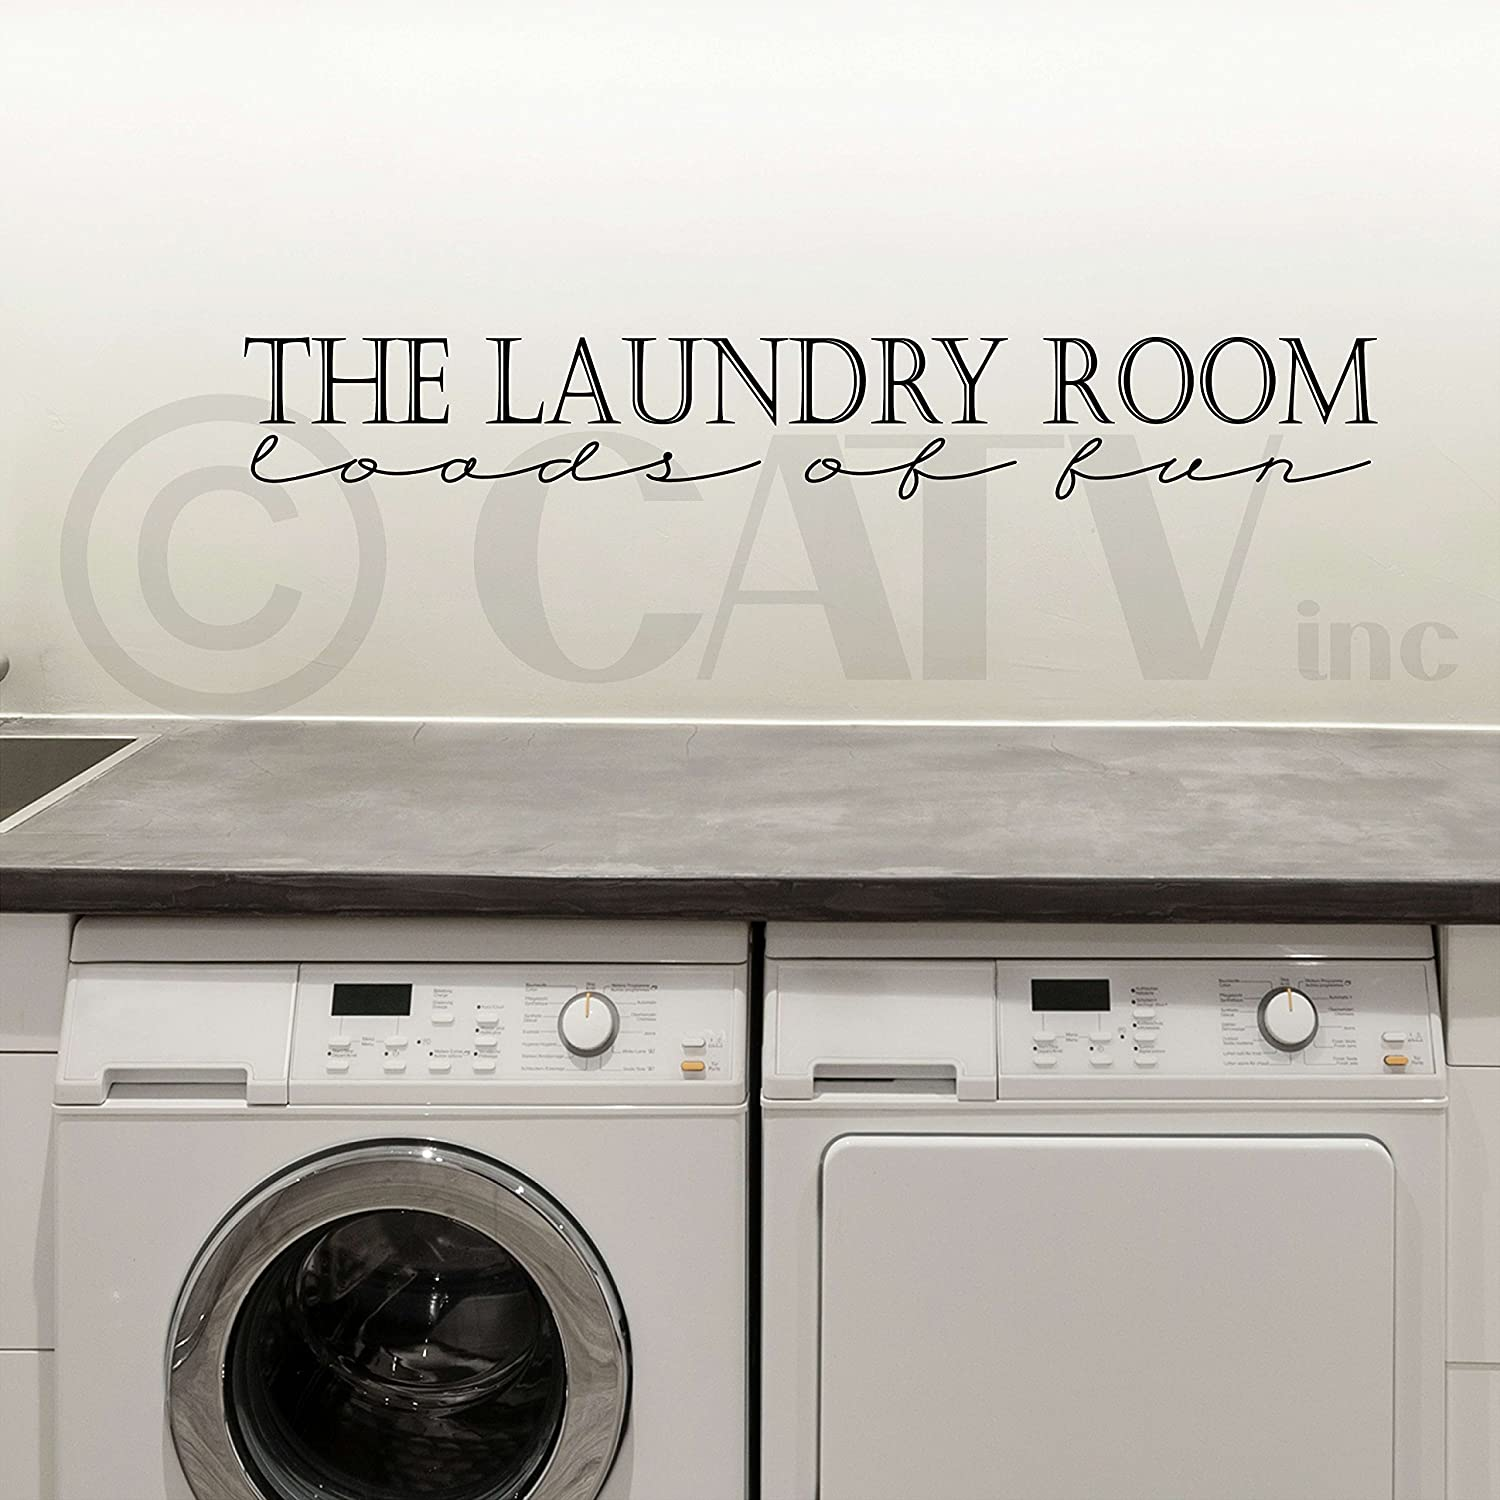 Amazon Com The Laundry Room Loads Of Fun Wall Sayings Vinyl Lettering Home Decor Stickers Quotes Appliques Home Kitchen